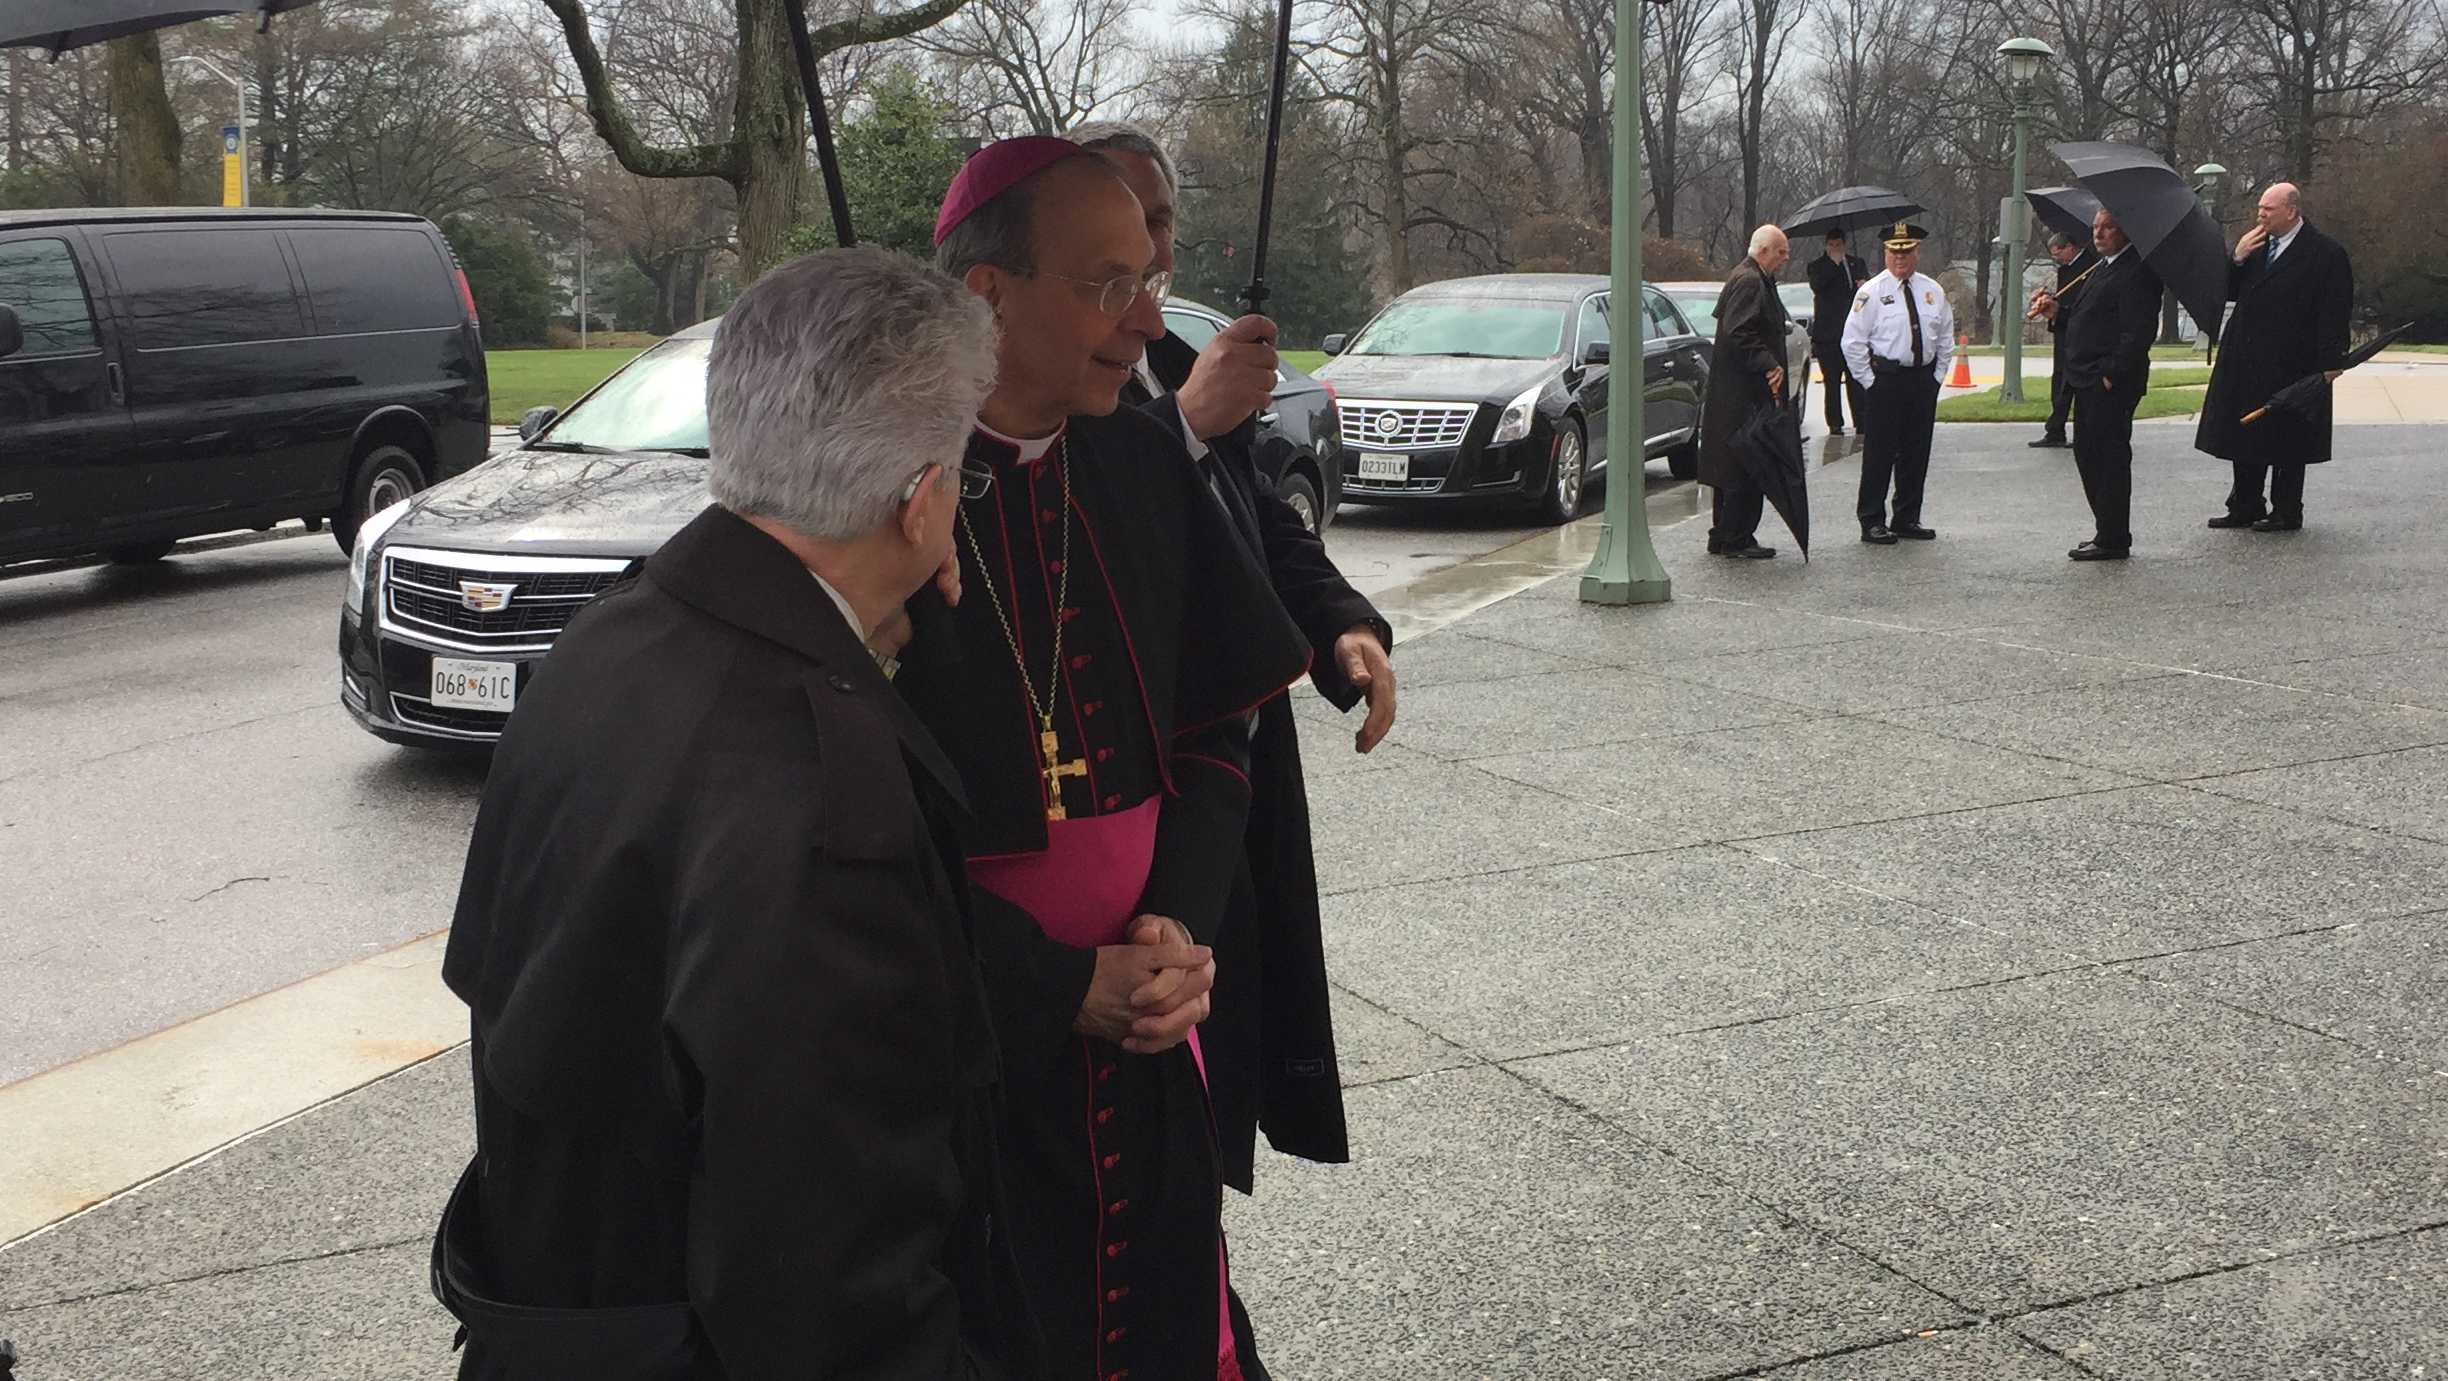 Archbishop Lori arriving